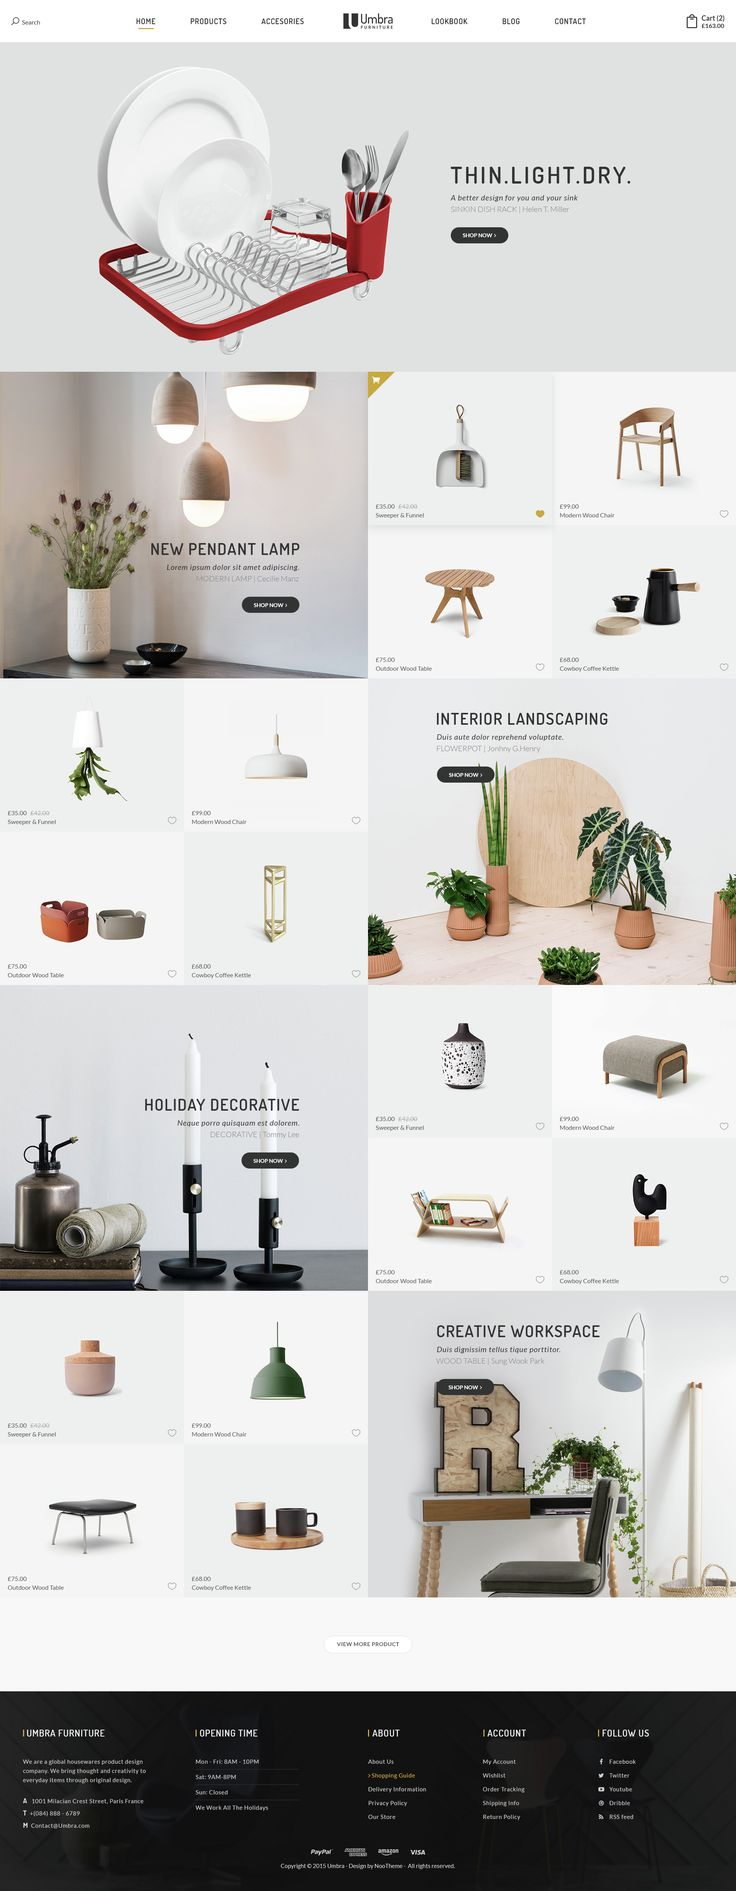 Umbra - Multi Concept eCommerce PSD Template - Download: http://themeforest.net/item/umbra-multi-concept-ecommerce-psd-template/14475353?ref=sinzo #PSD #Templates